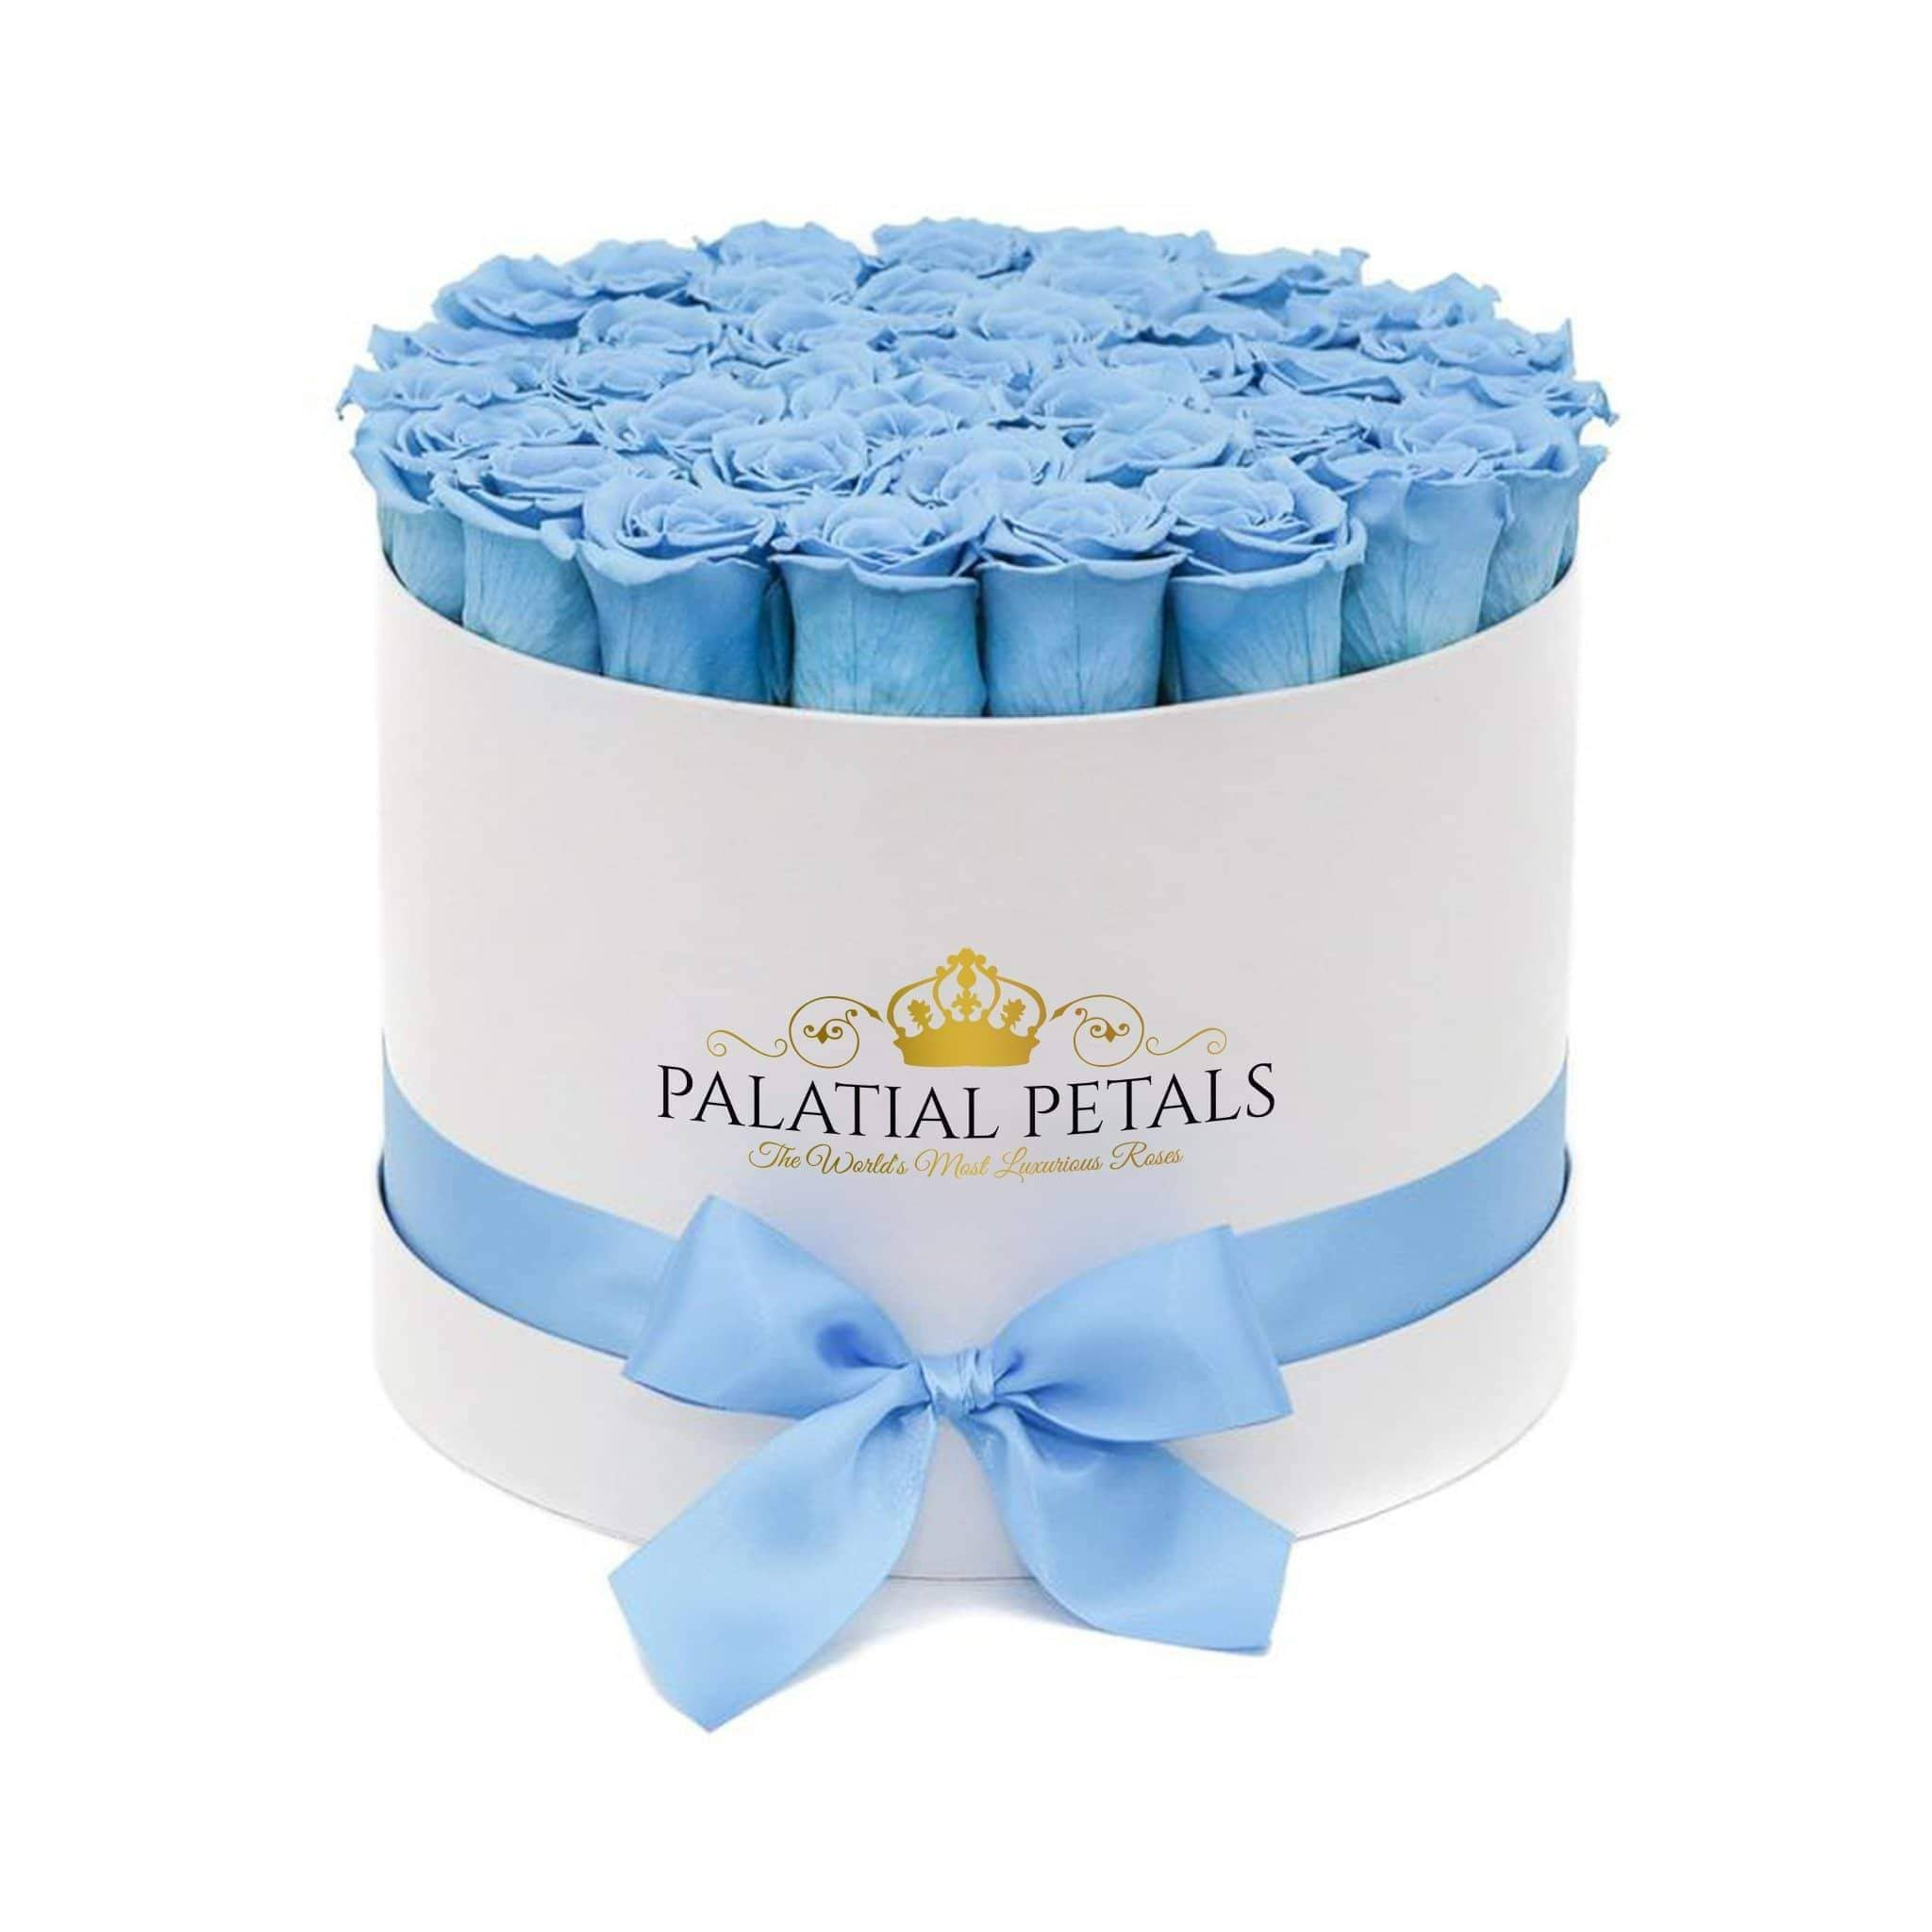 Baby Blue Roses That Last A Year - Grande Rose Box - Palatial Petals